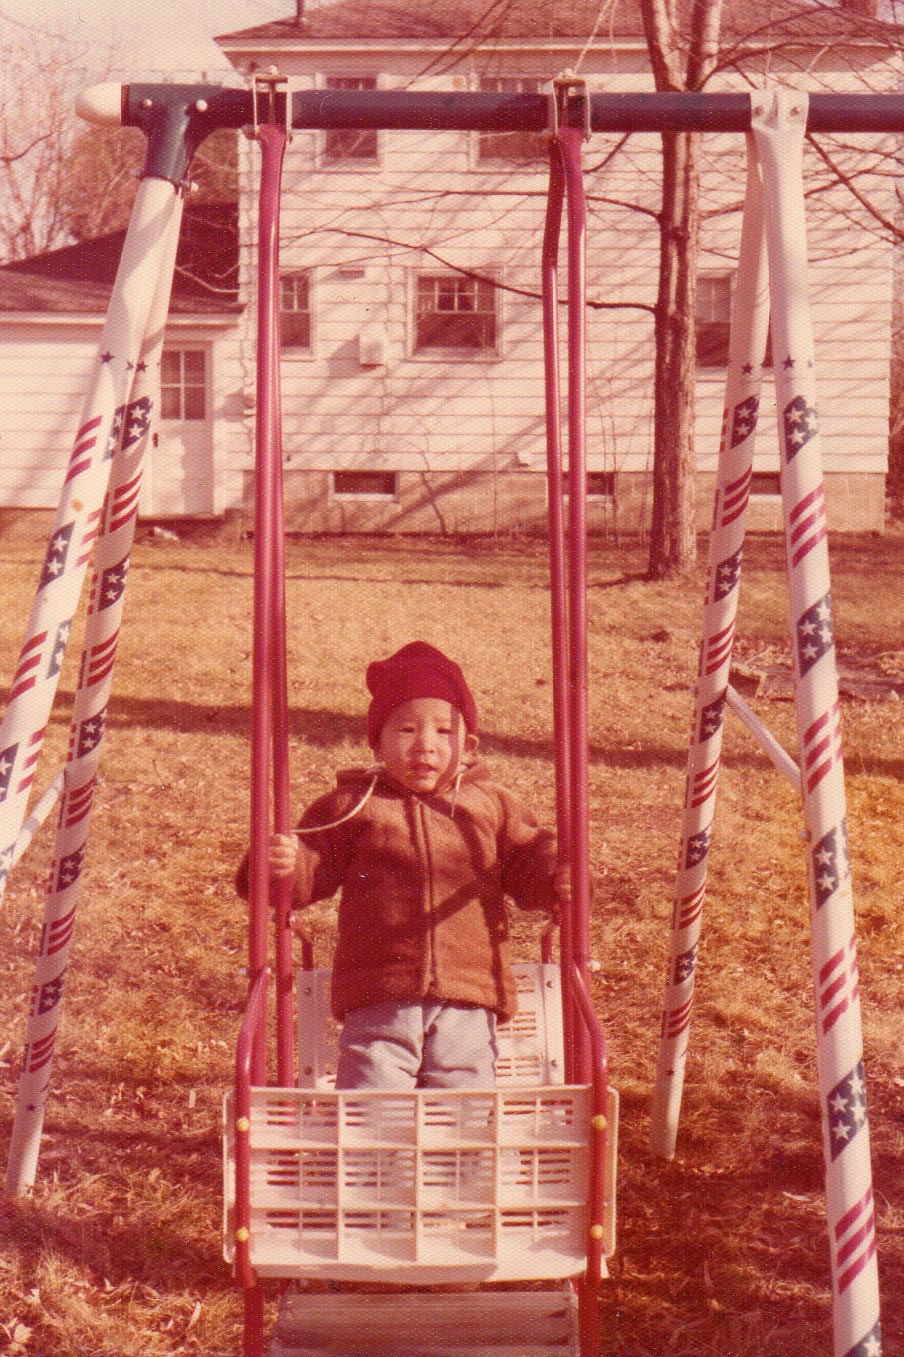 Andrew Yang, at age 2, sitting on a swing set in his home of upstate New York.